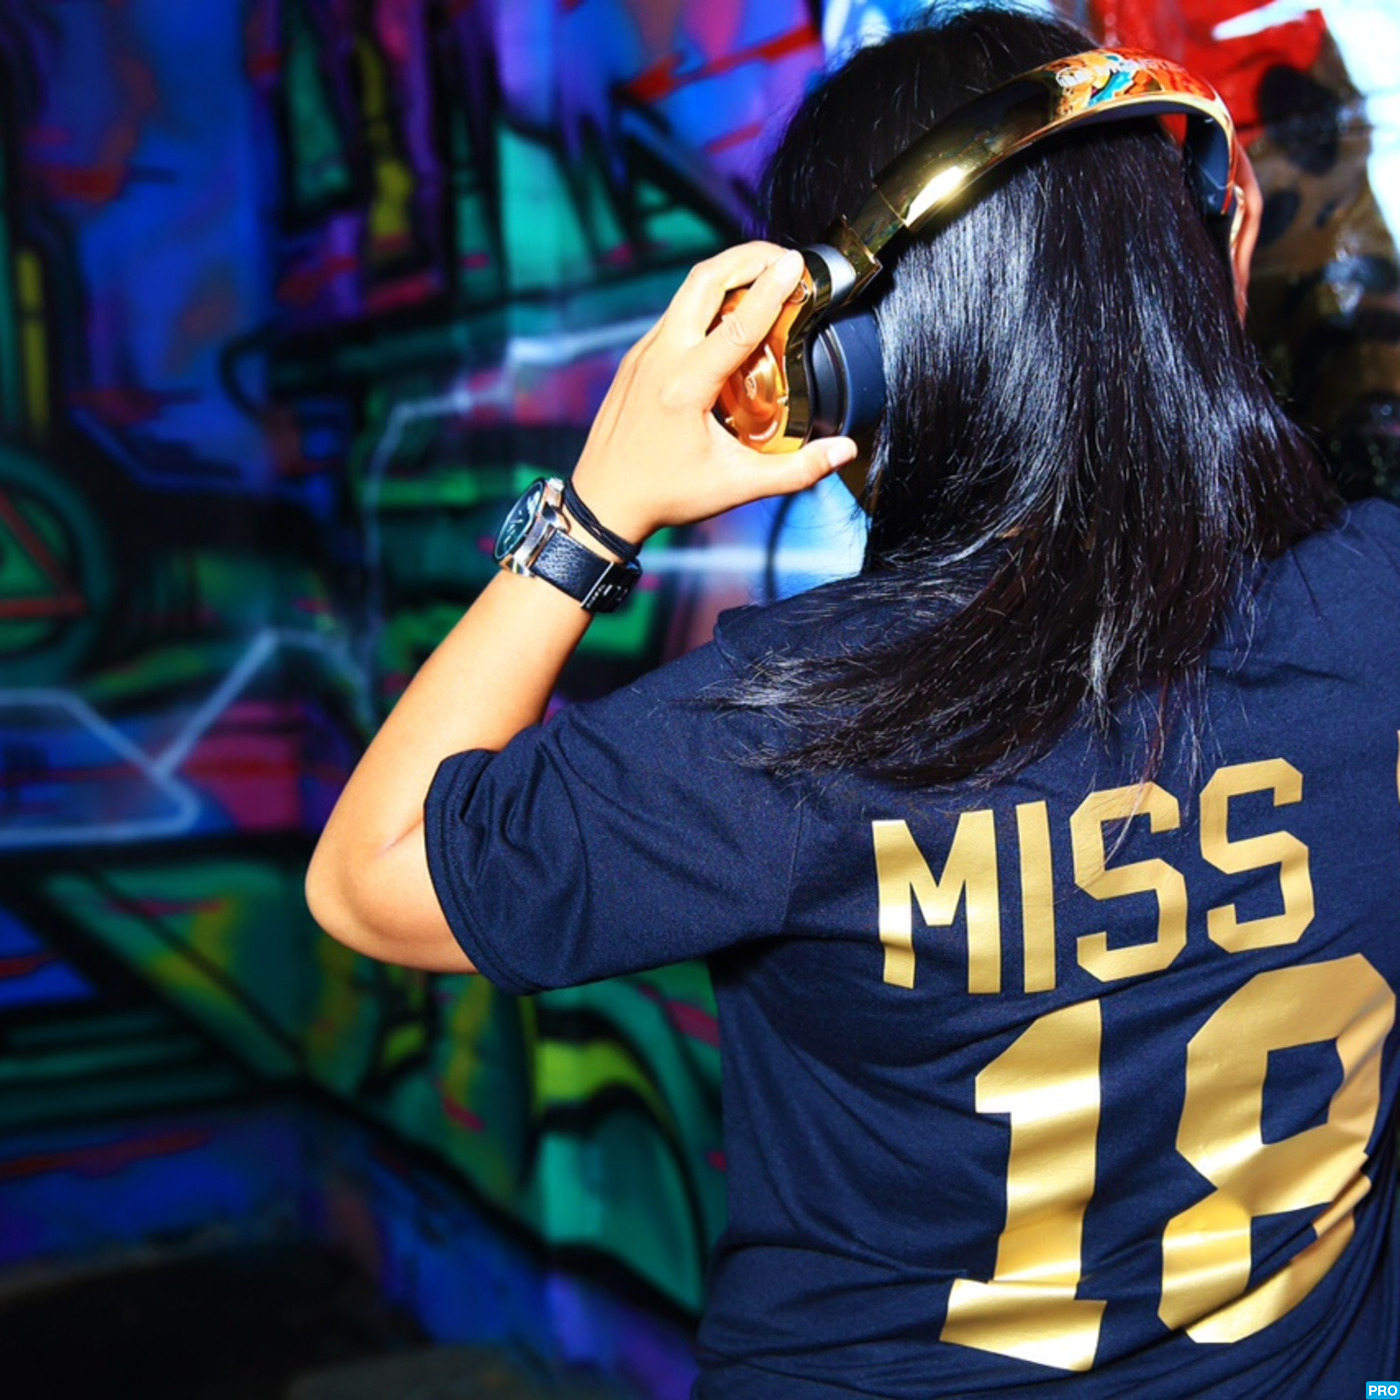 DJ MISS M Podcasts